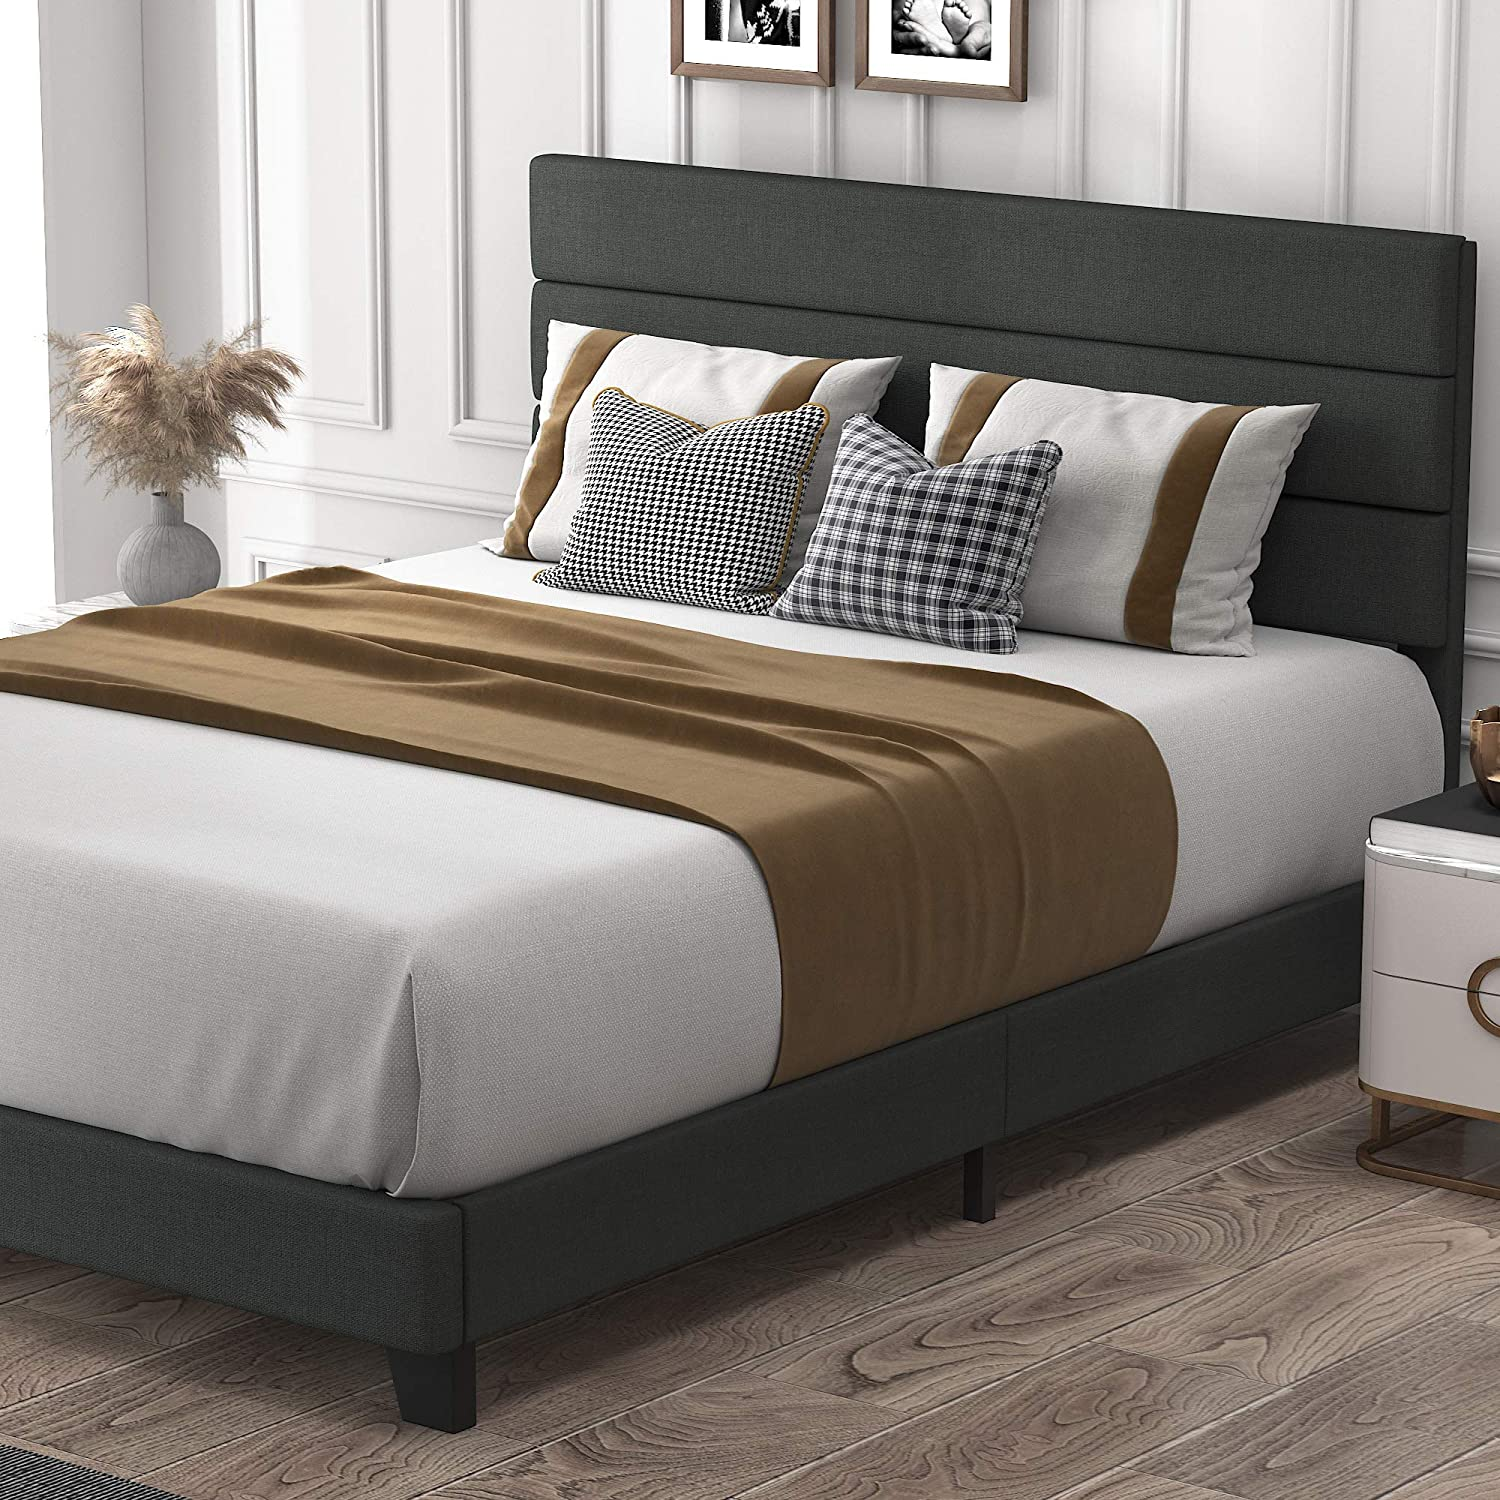 allewie full size platform bed frame with fabric upholstered headboard and wooden slats fully upholstered mattress foundation strong wooden slats